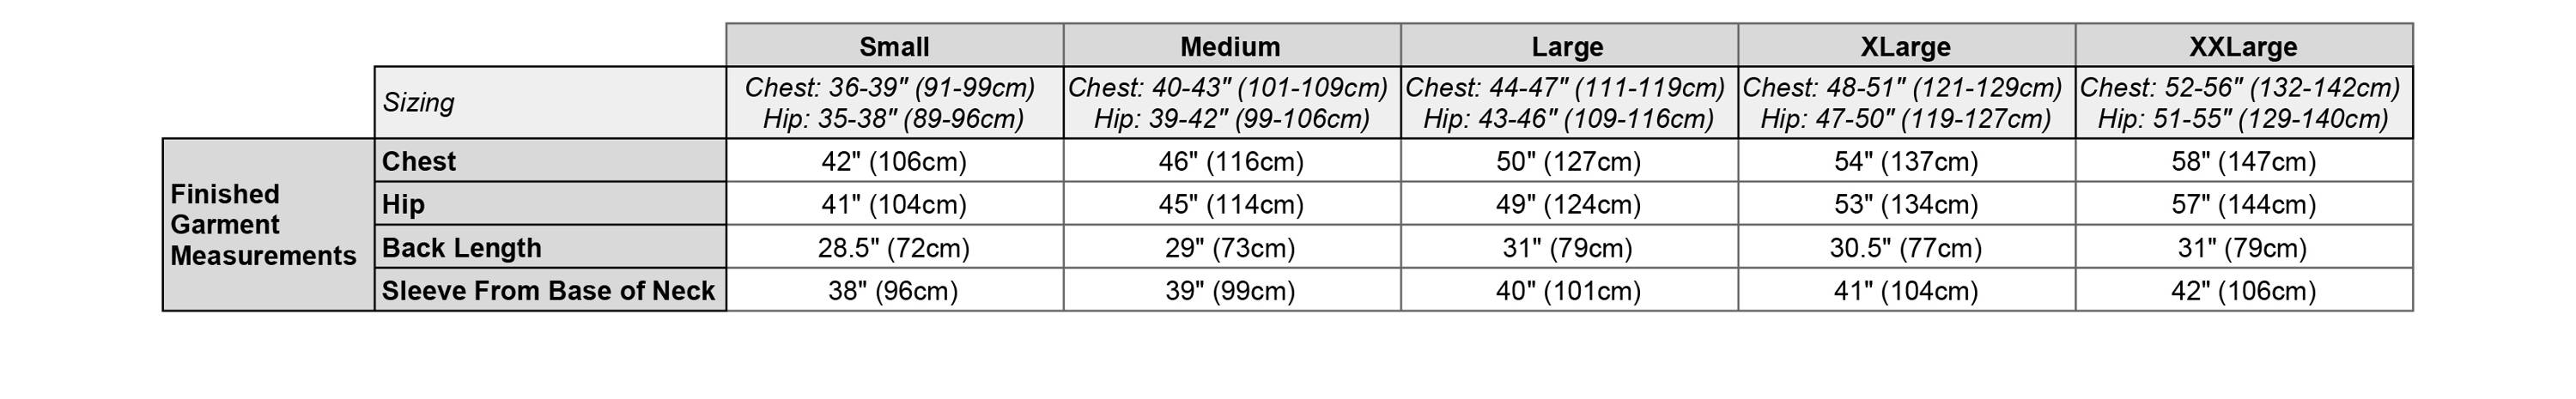 9b0f523fd60 This is not a size chart or sizing guide